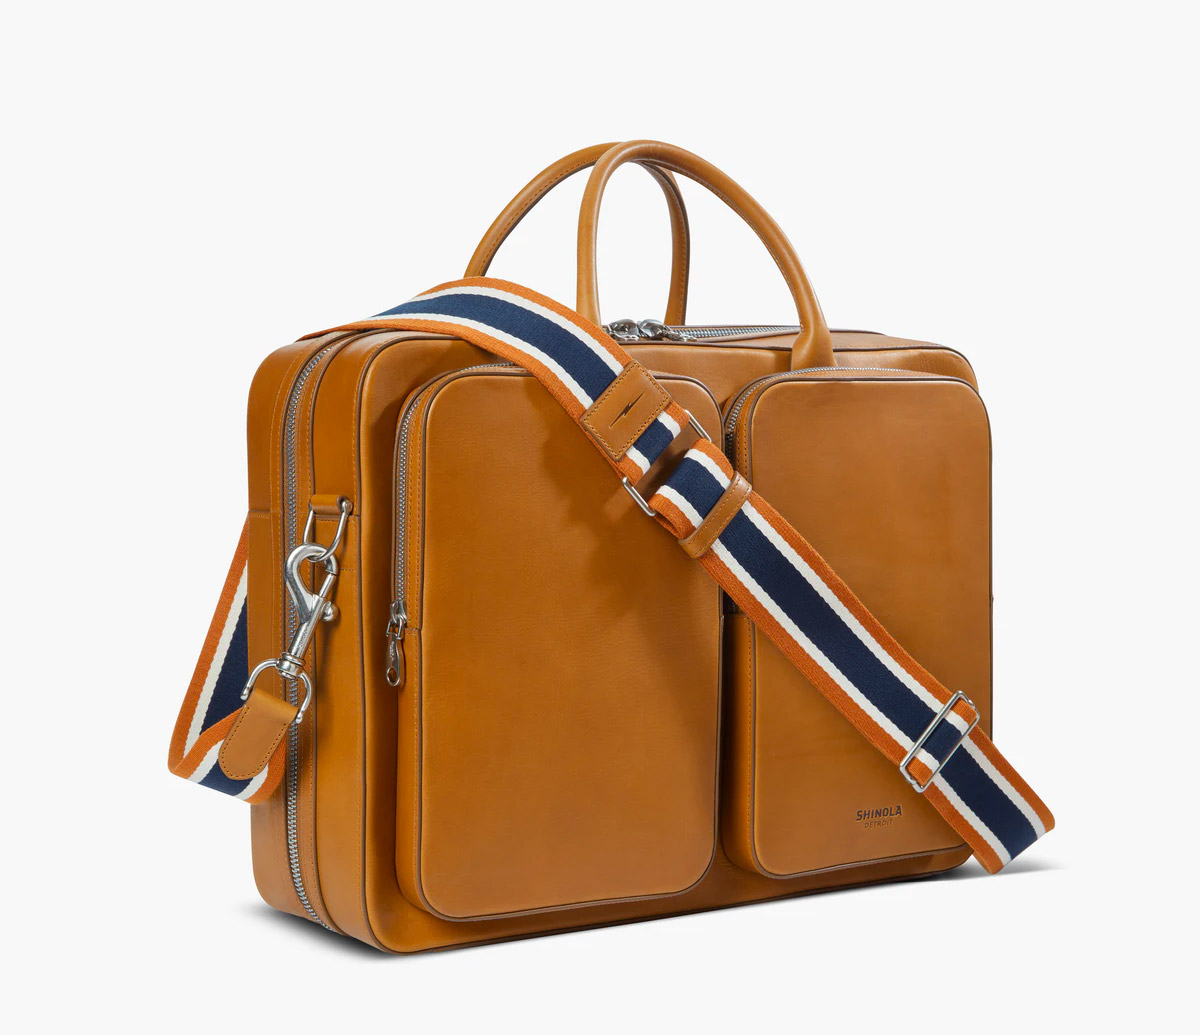 The Canfield Traveler Brief Looks Good in Leather at werd.com